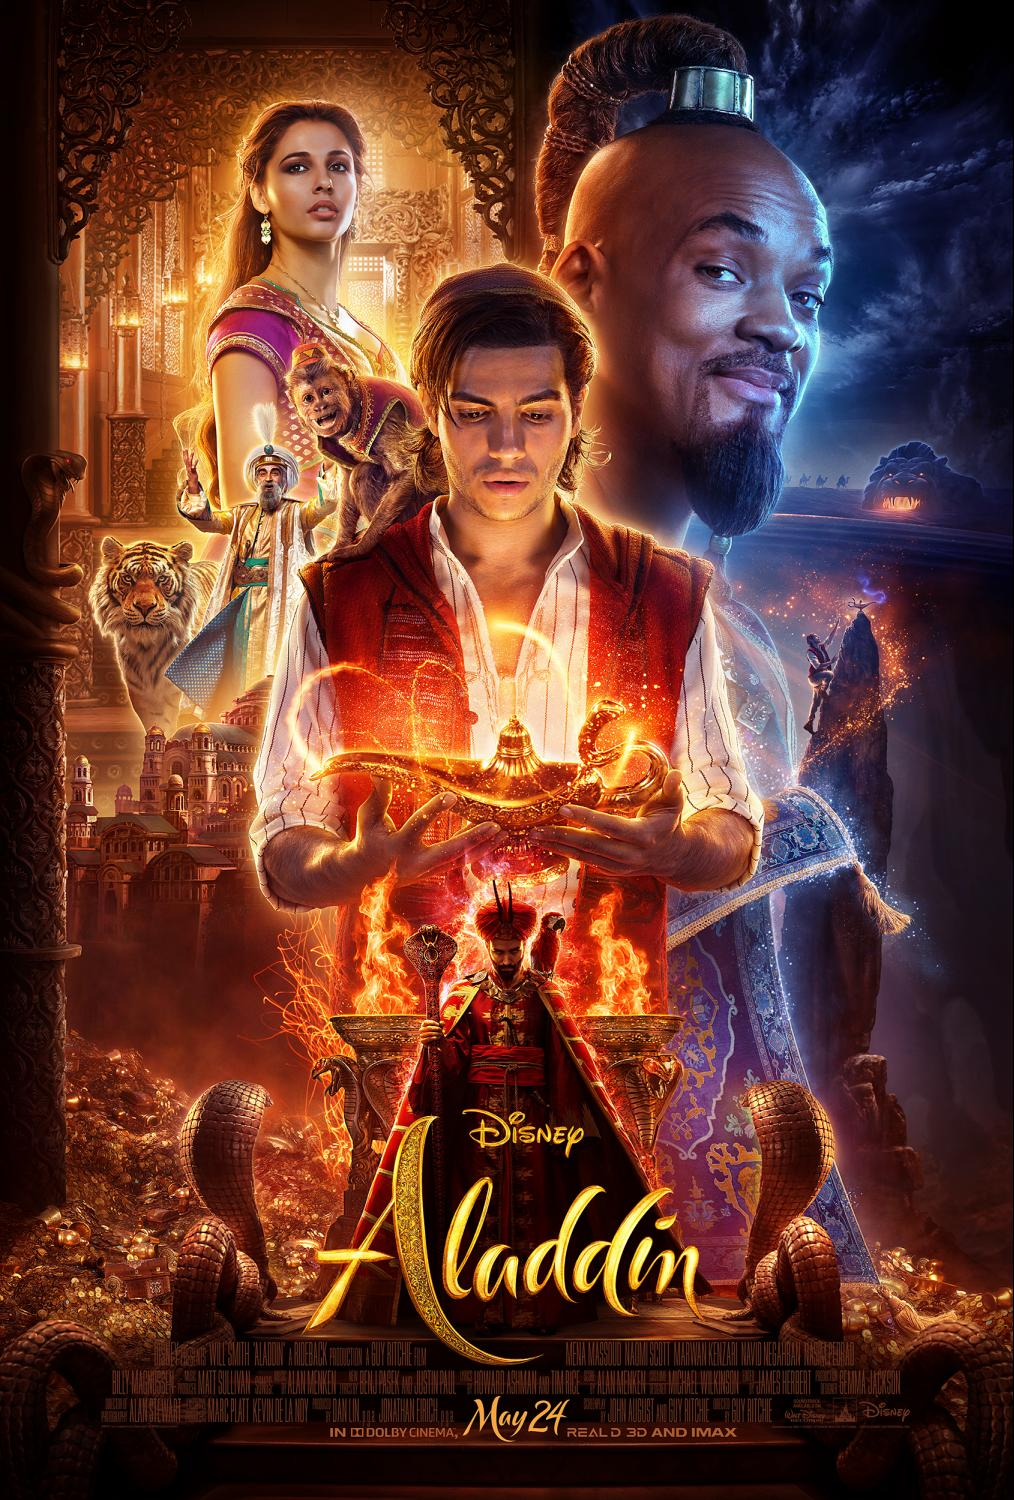 Will Disney's live action 2019 Aladdin be a great family movie or too scary for kids? See the official trailer! Disney Aladdin Poster #Aladdin